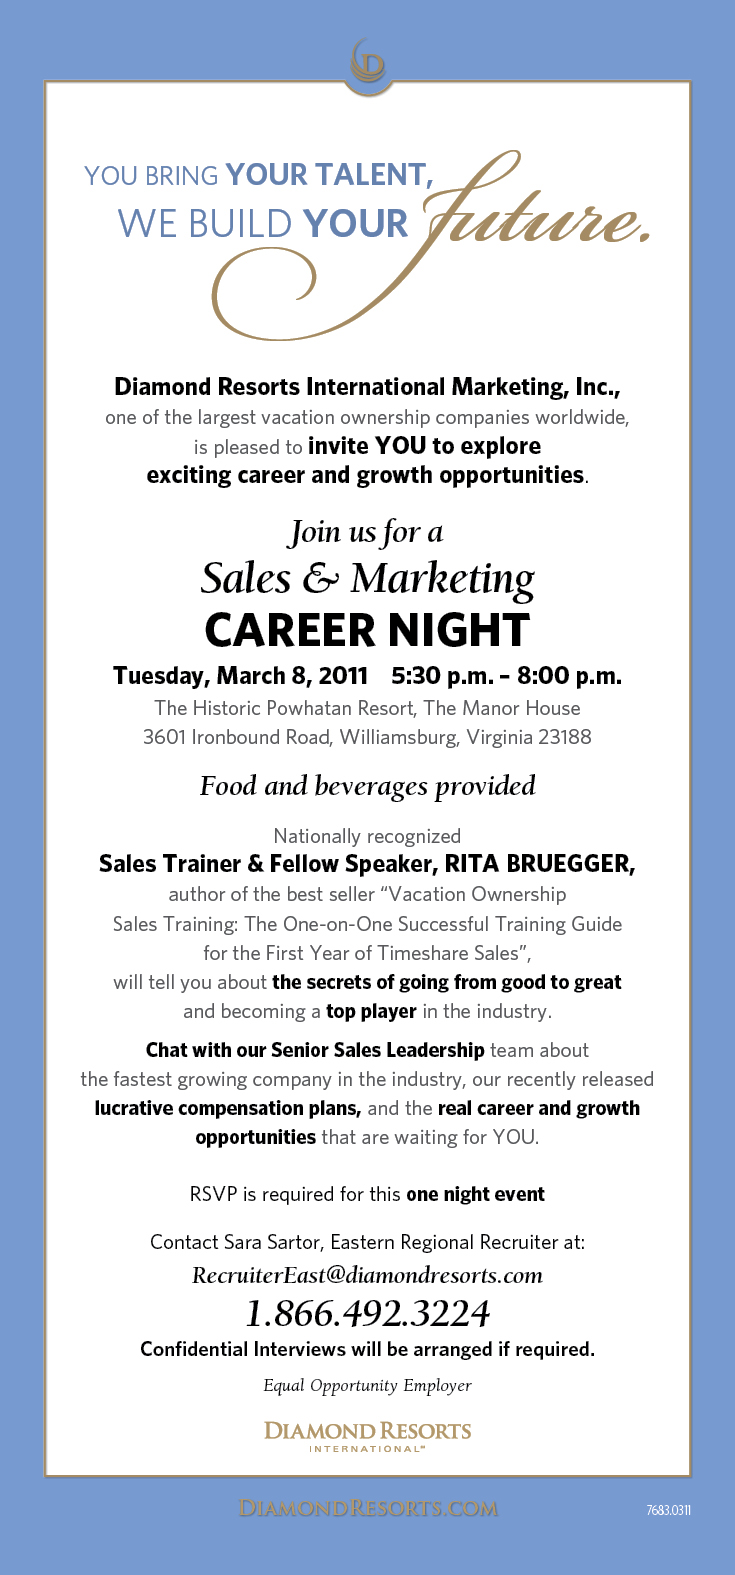 DRI Sales And Marketing Career Night Invitation-Tues March 8